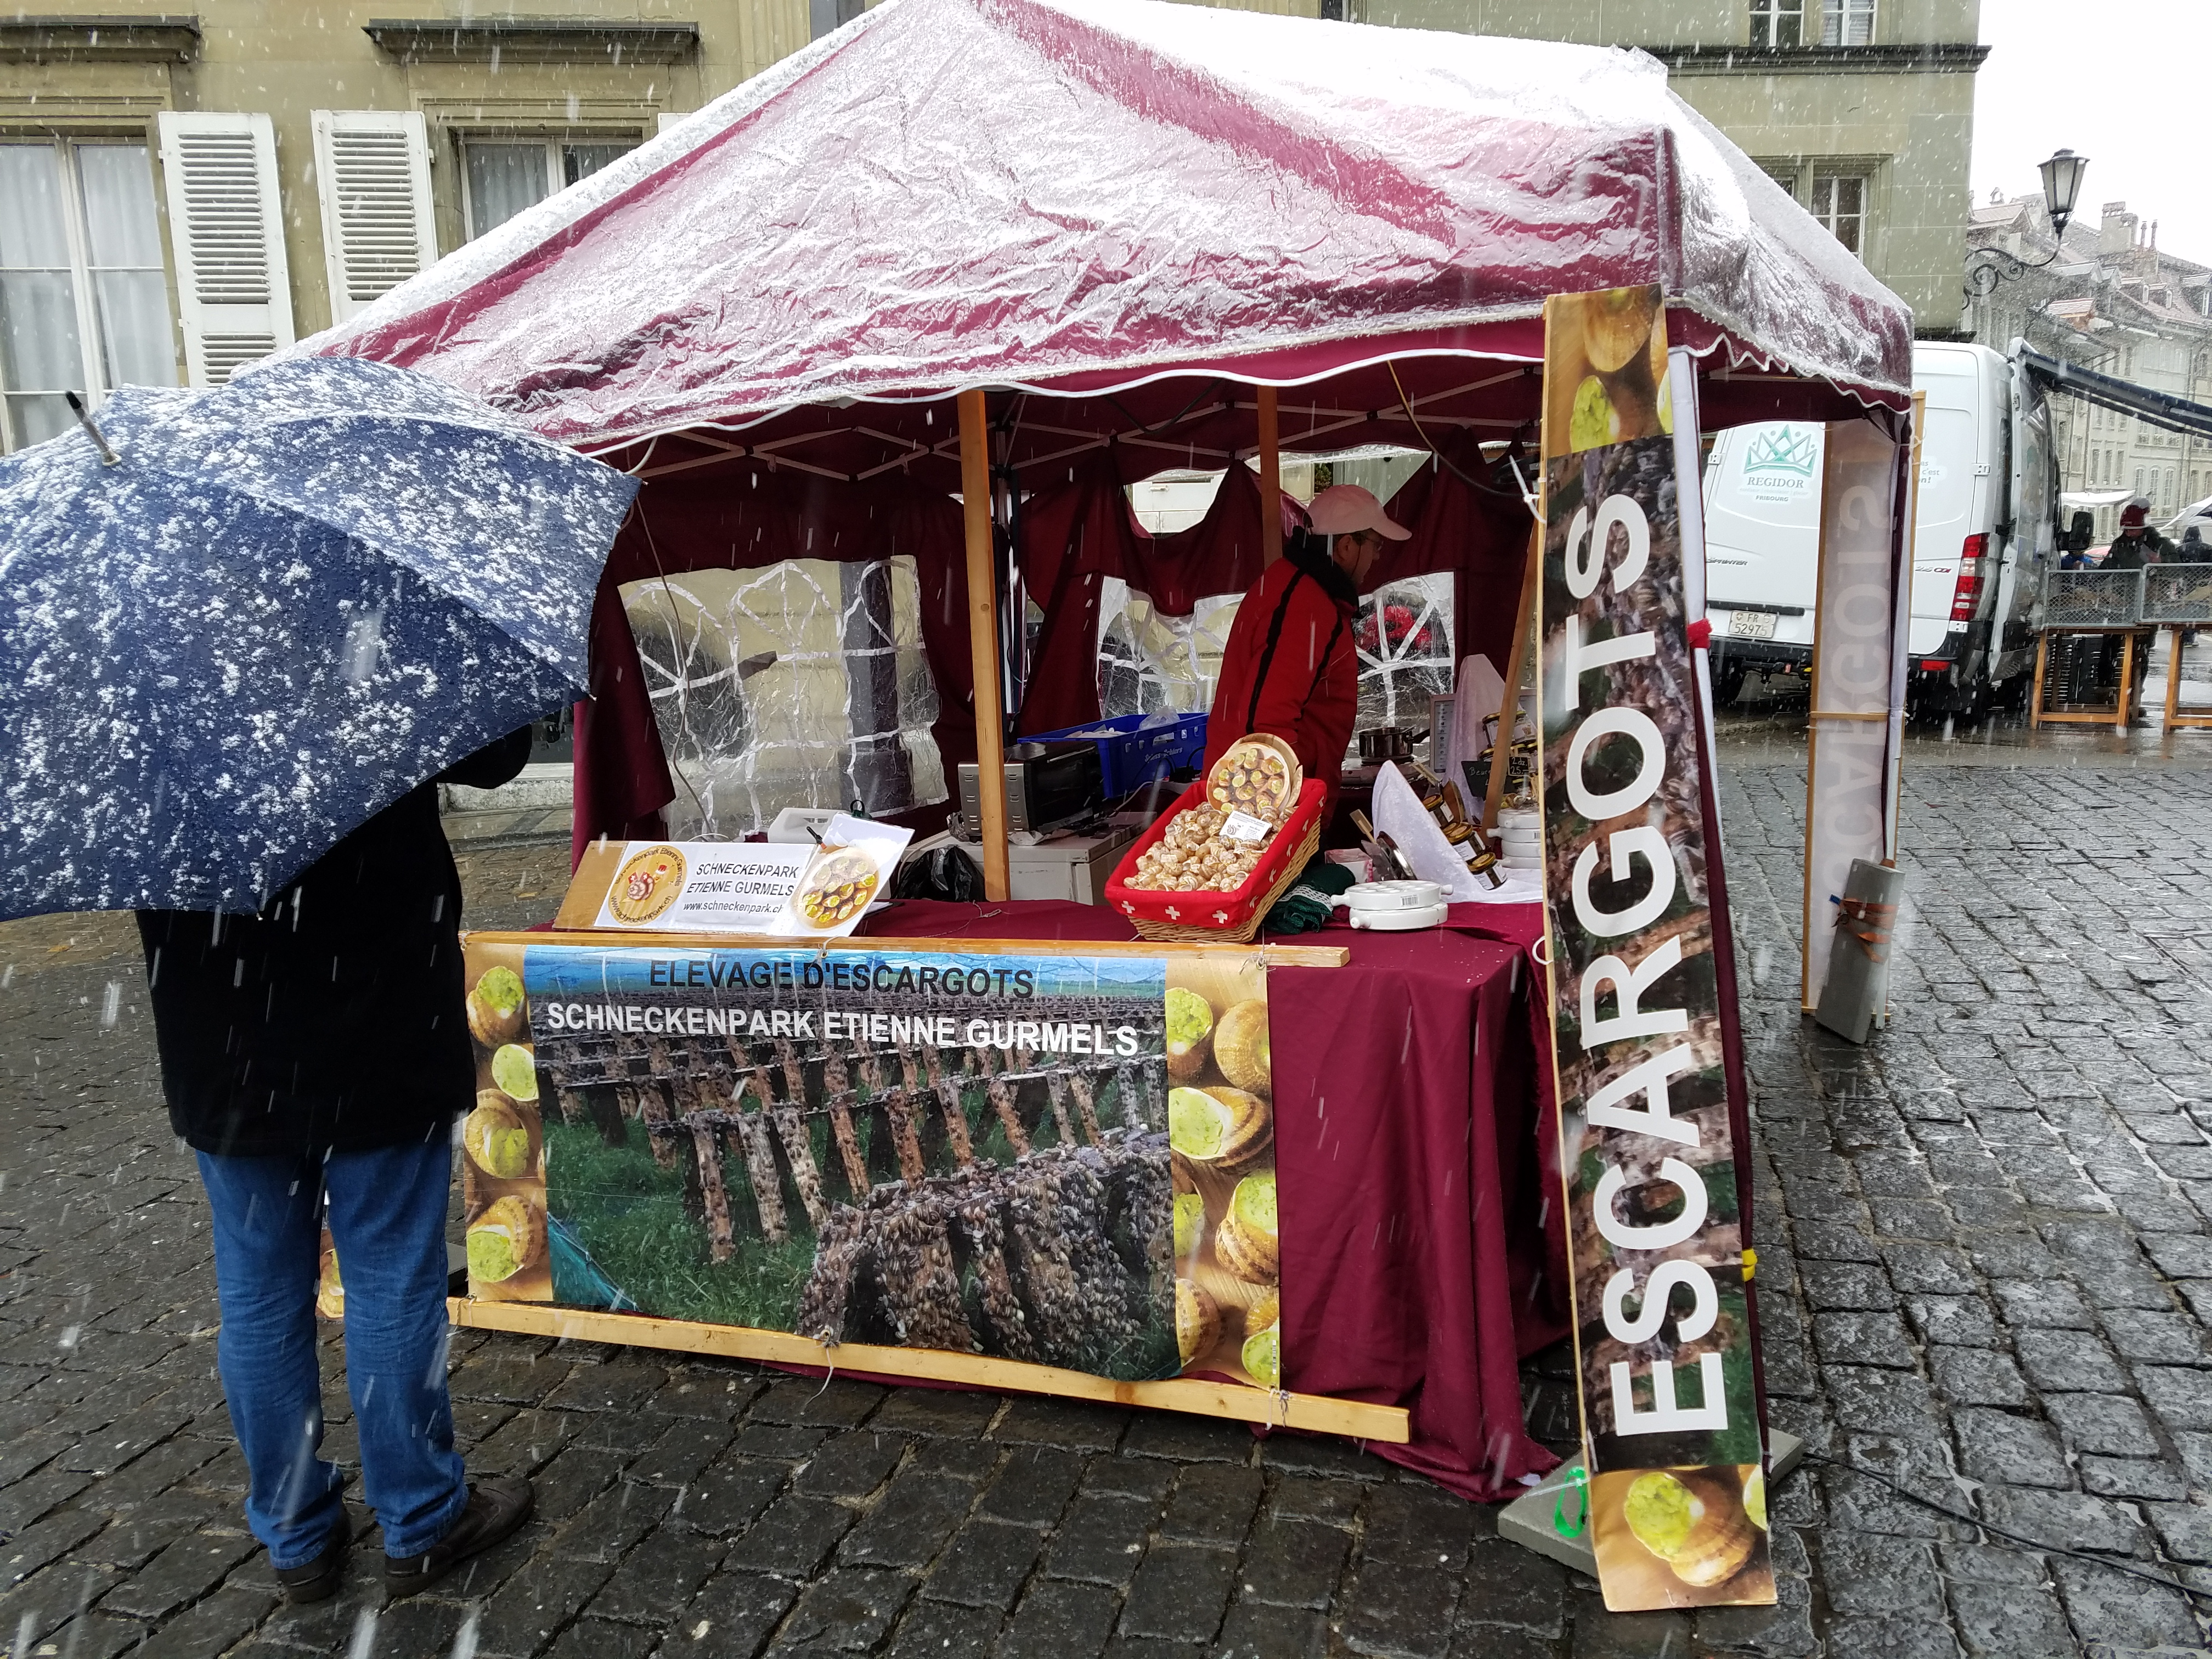 Fribourg - Snails for sale - Gamesforlanguage.com